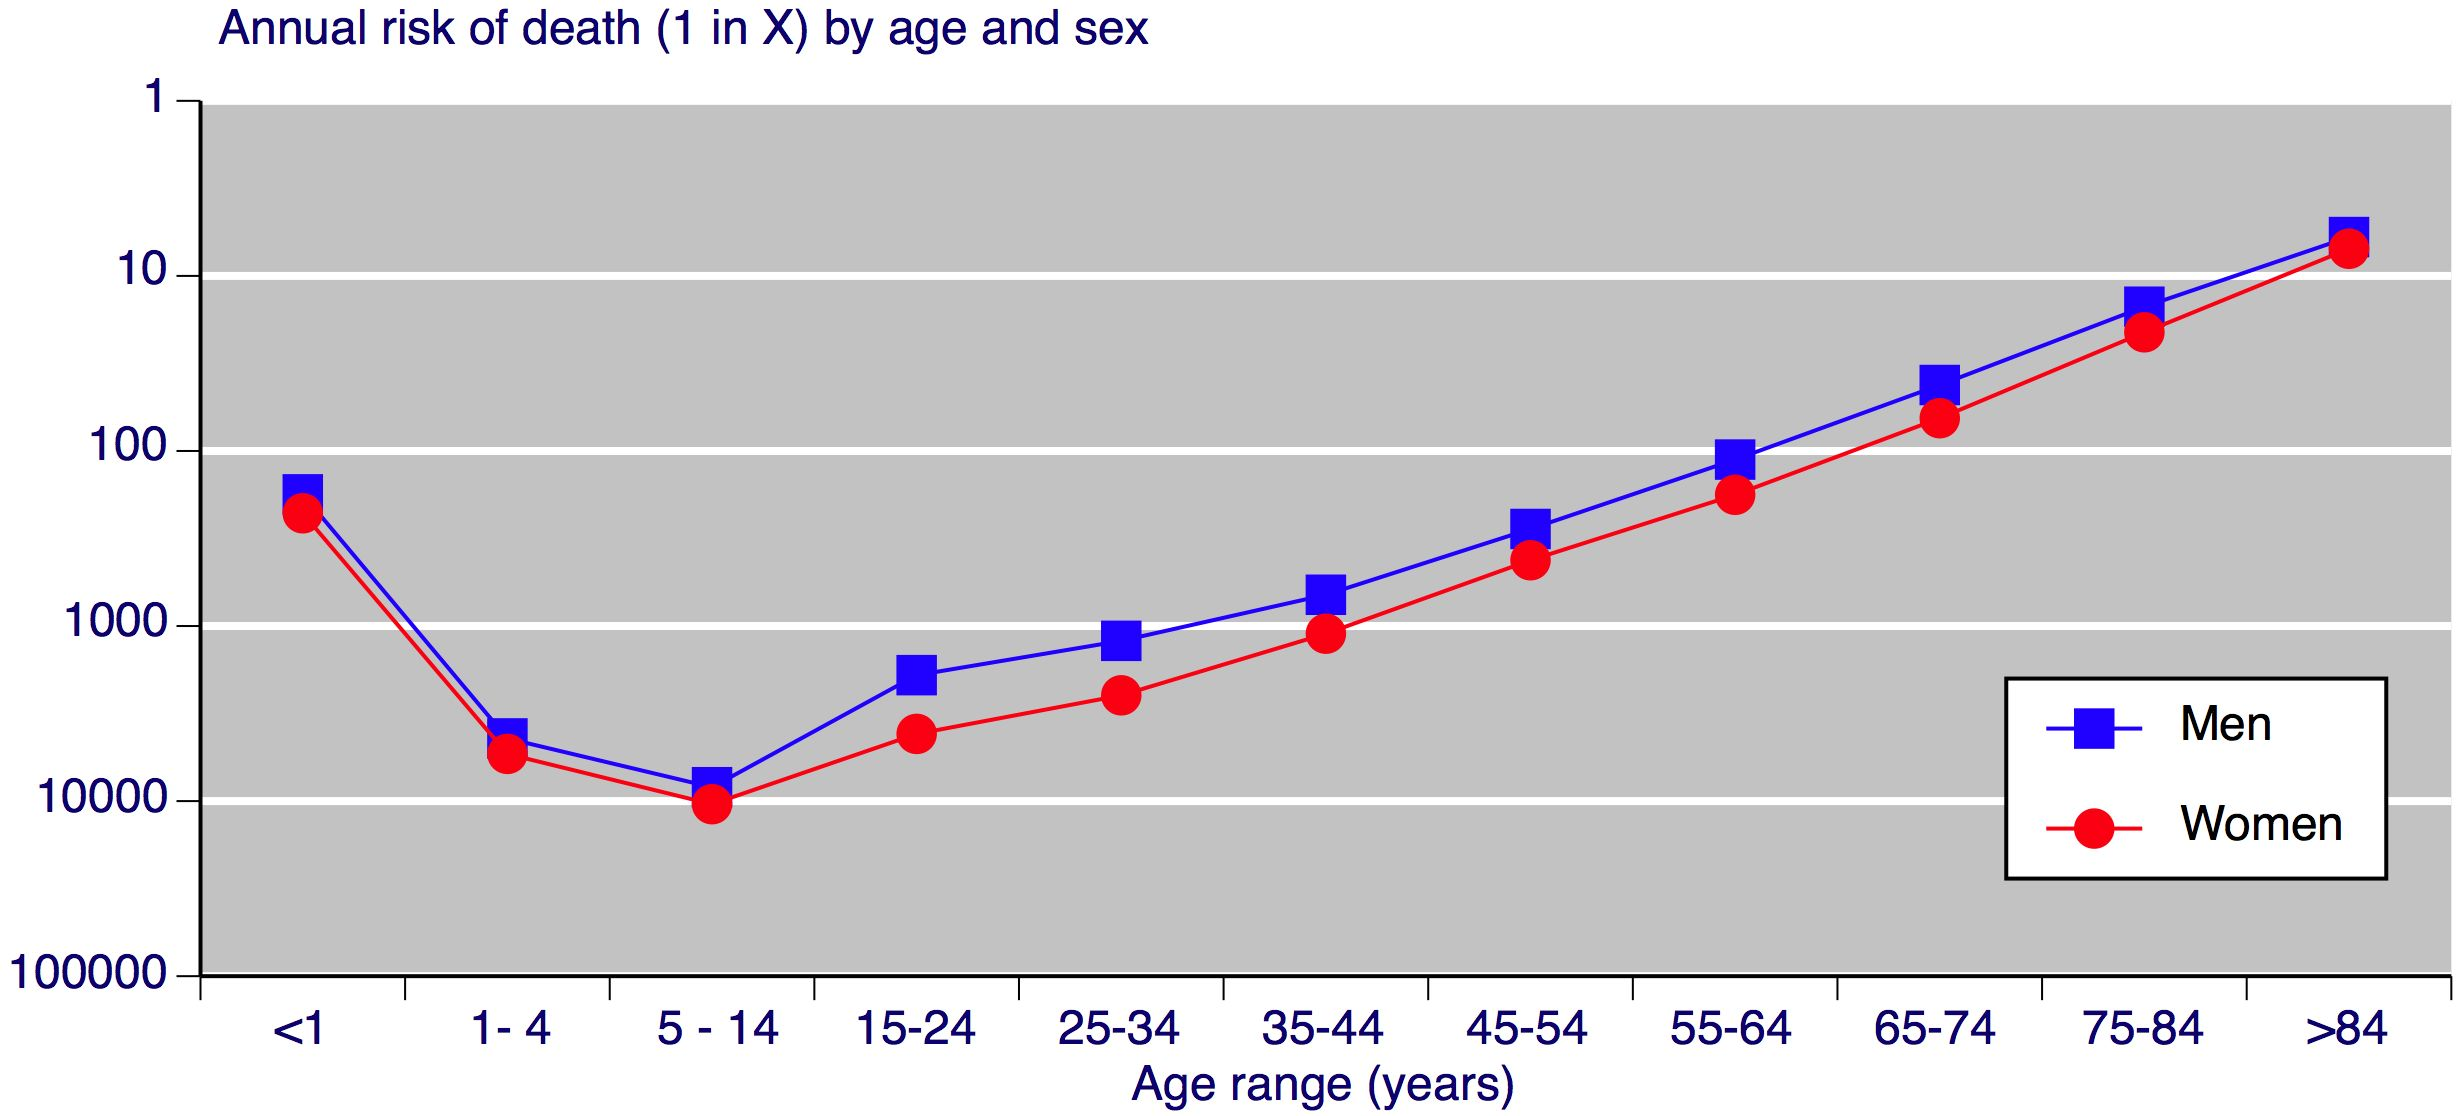 Risk of death by age and sex